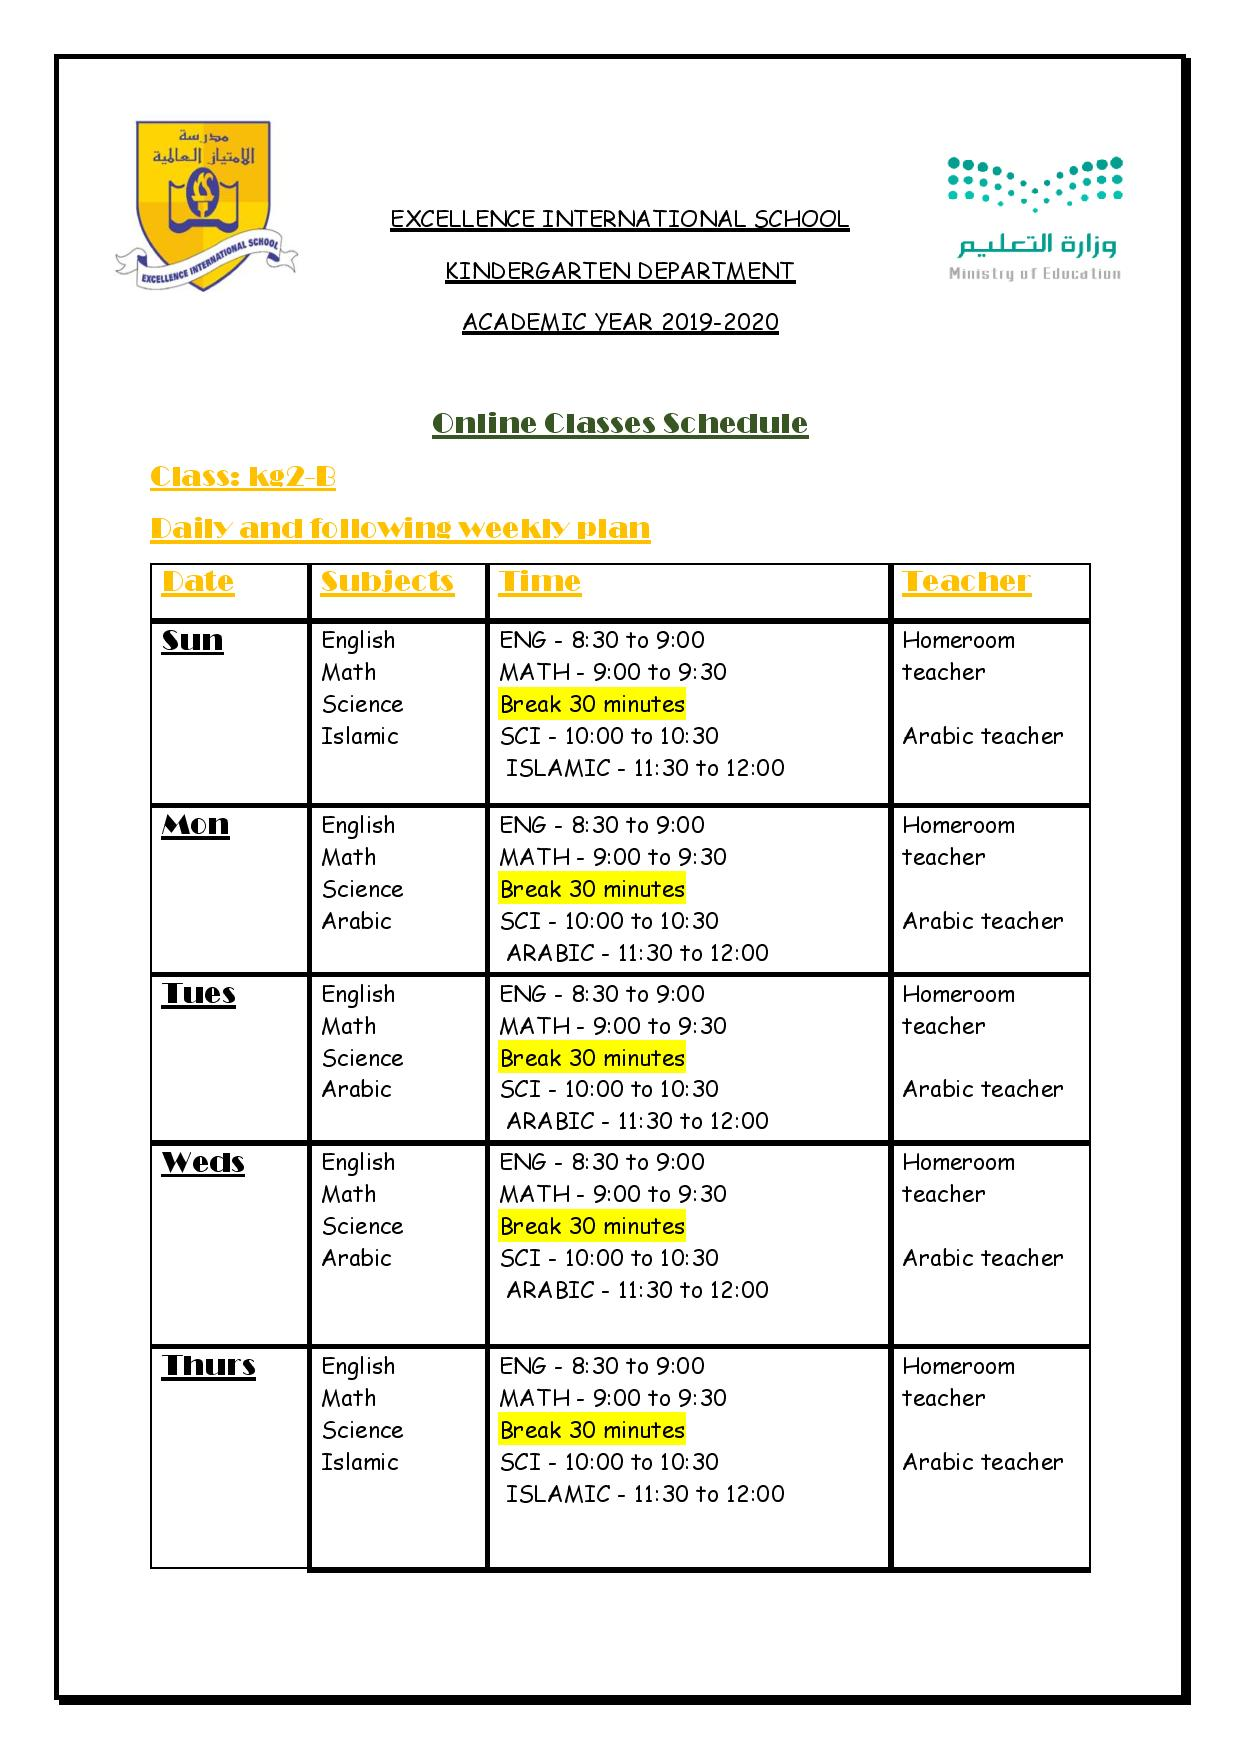 Online Classes Schedule 2 page 003 8fa12